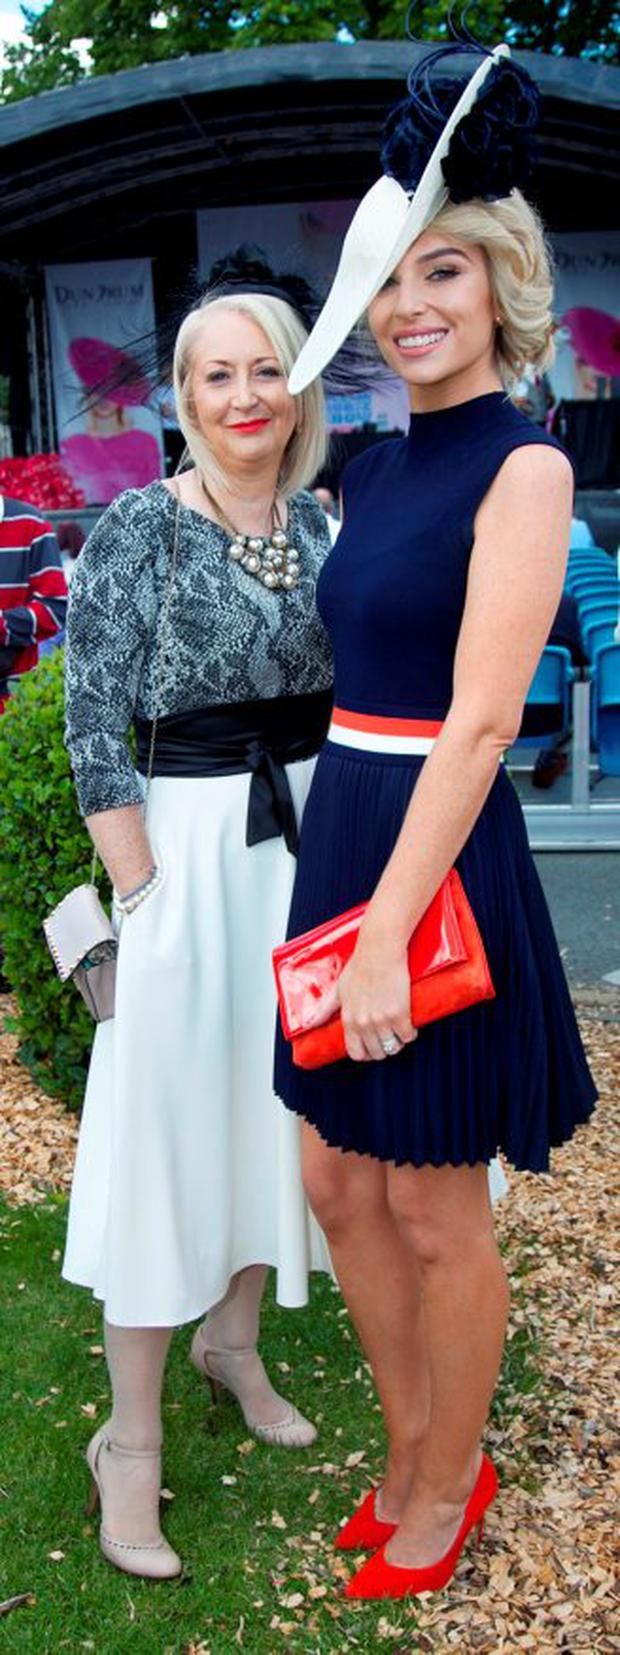 Judges Bairbre Power and Pippa O'Connor